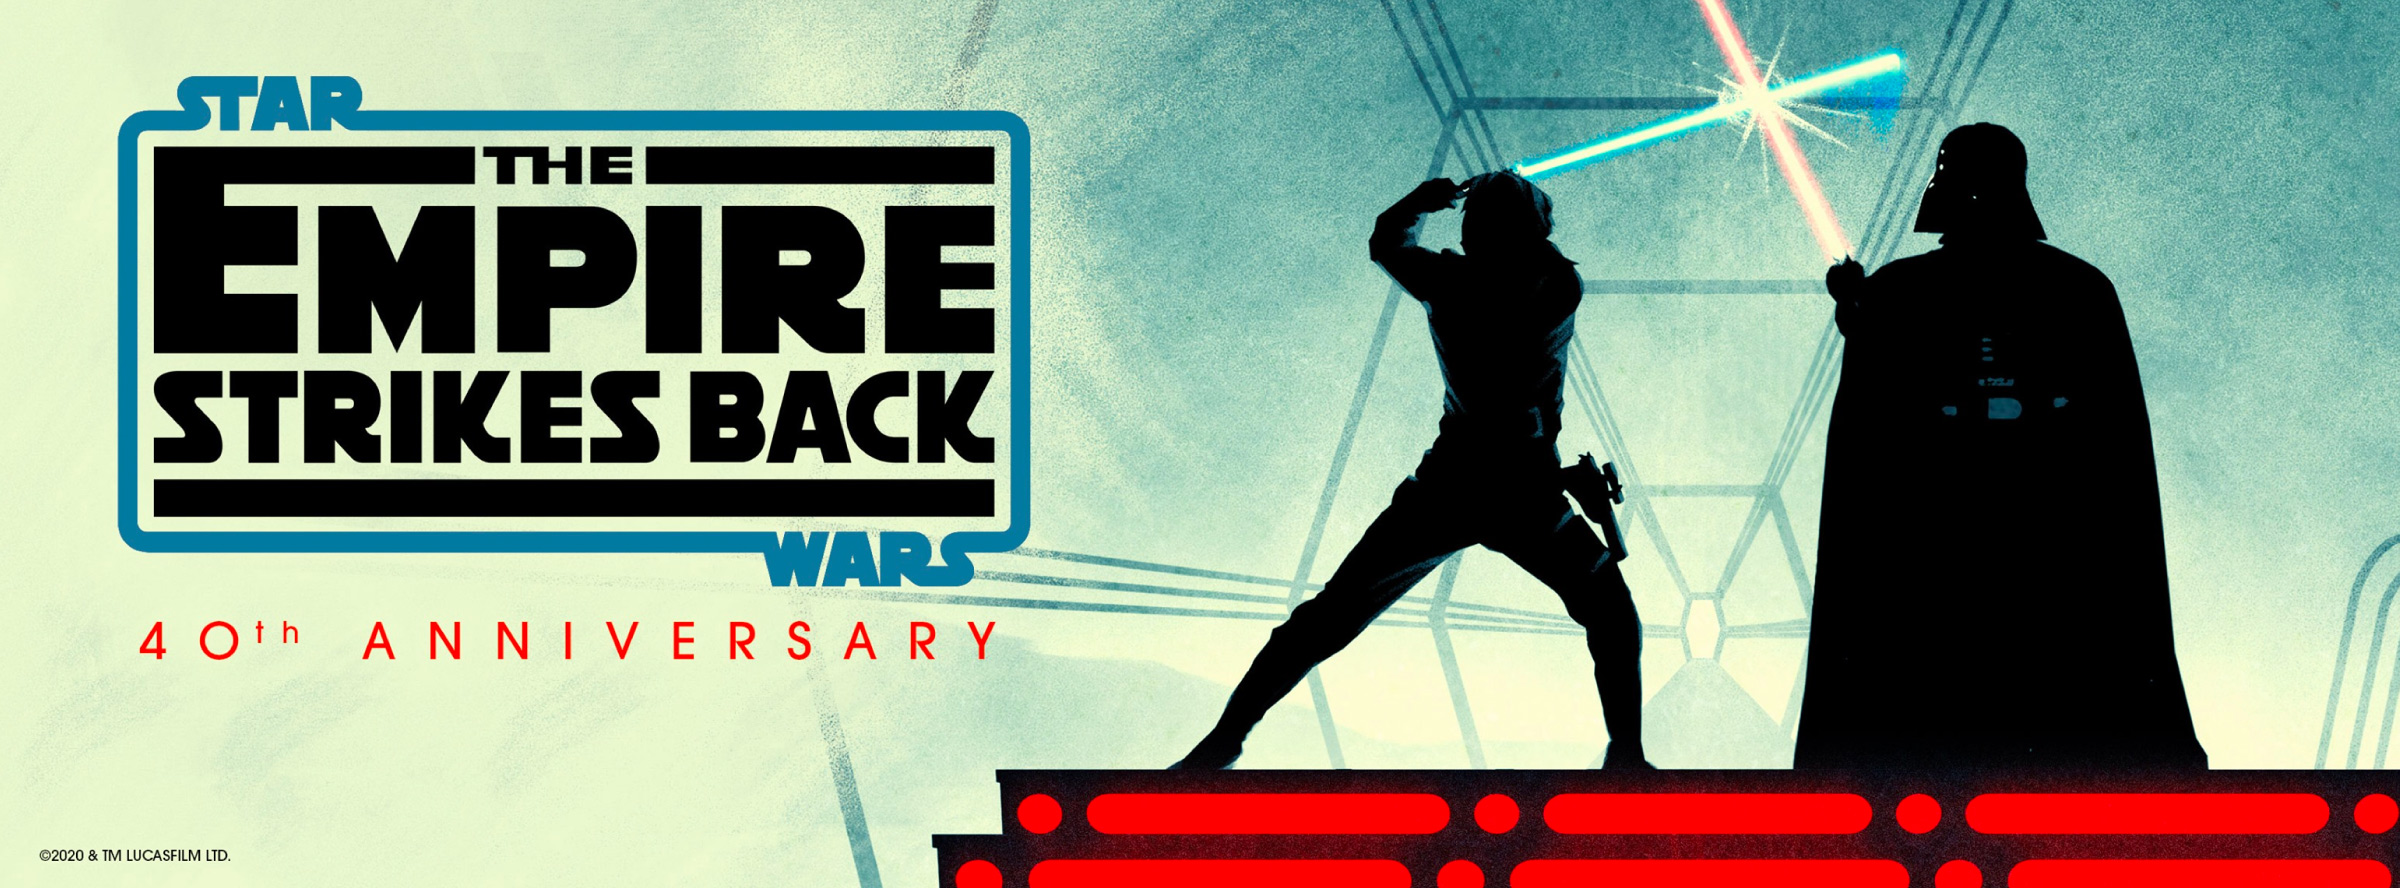 star-wars-episode-v---the-empire-strikes-back-40th-anniversary